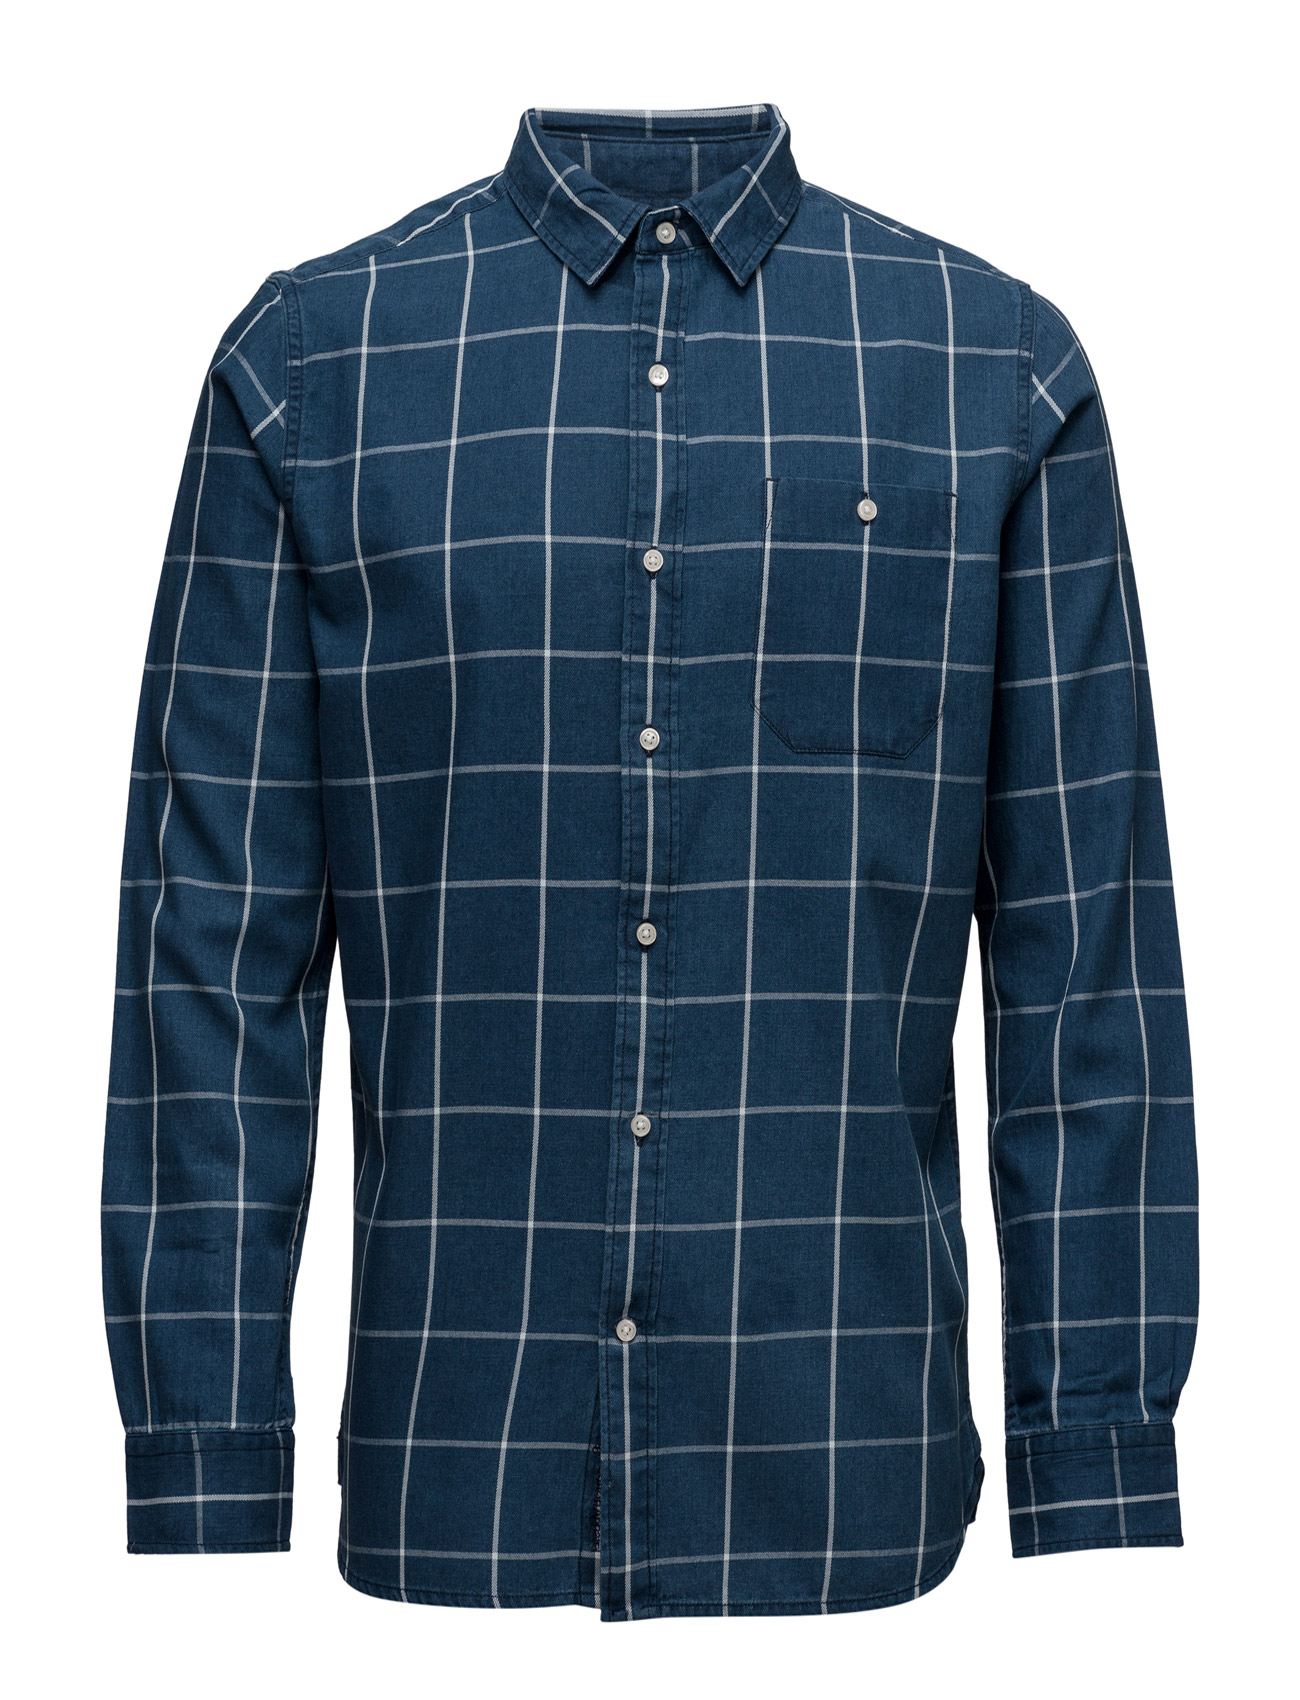 Yarndyed Checked Shirt - Gots Knowledge Cotton Apparel Casual sko til Herrer i Total Eclipse